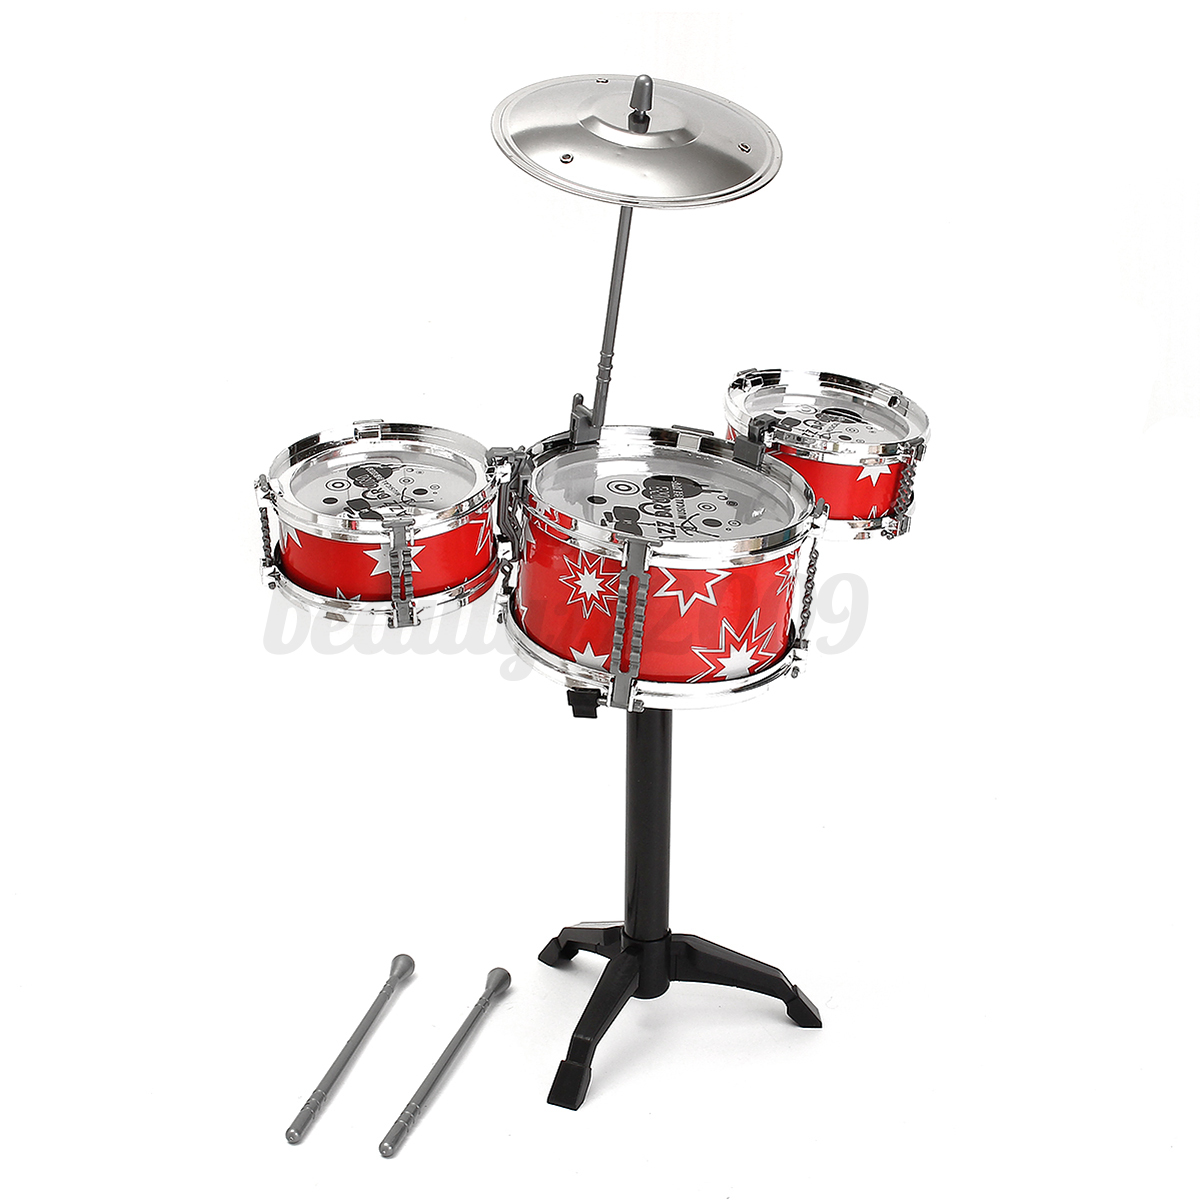 Toy Drum Musical Instruments : Jazz drum rock set child kids musical instrument early